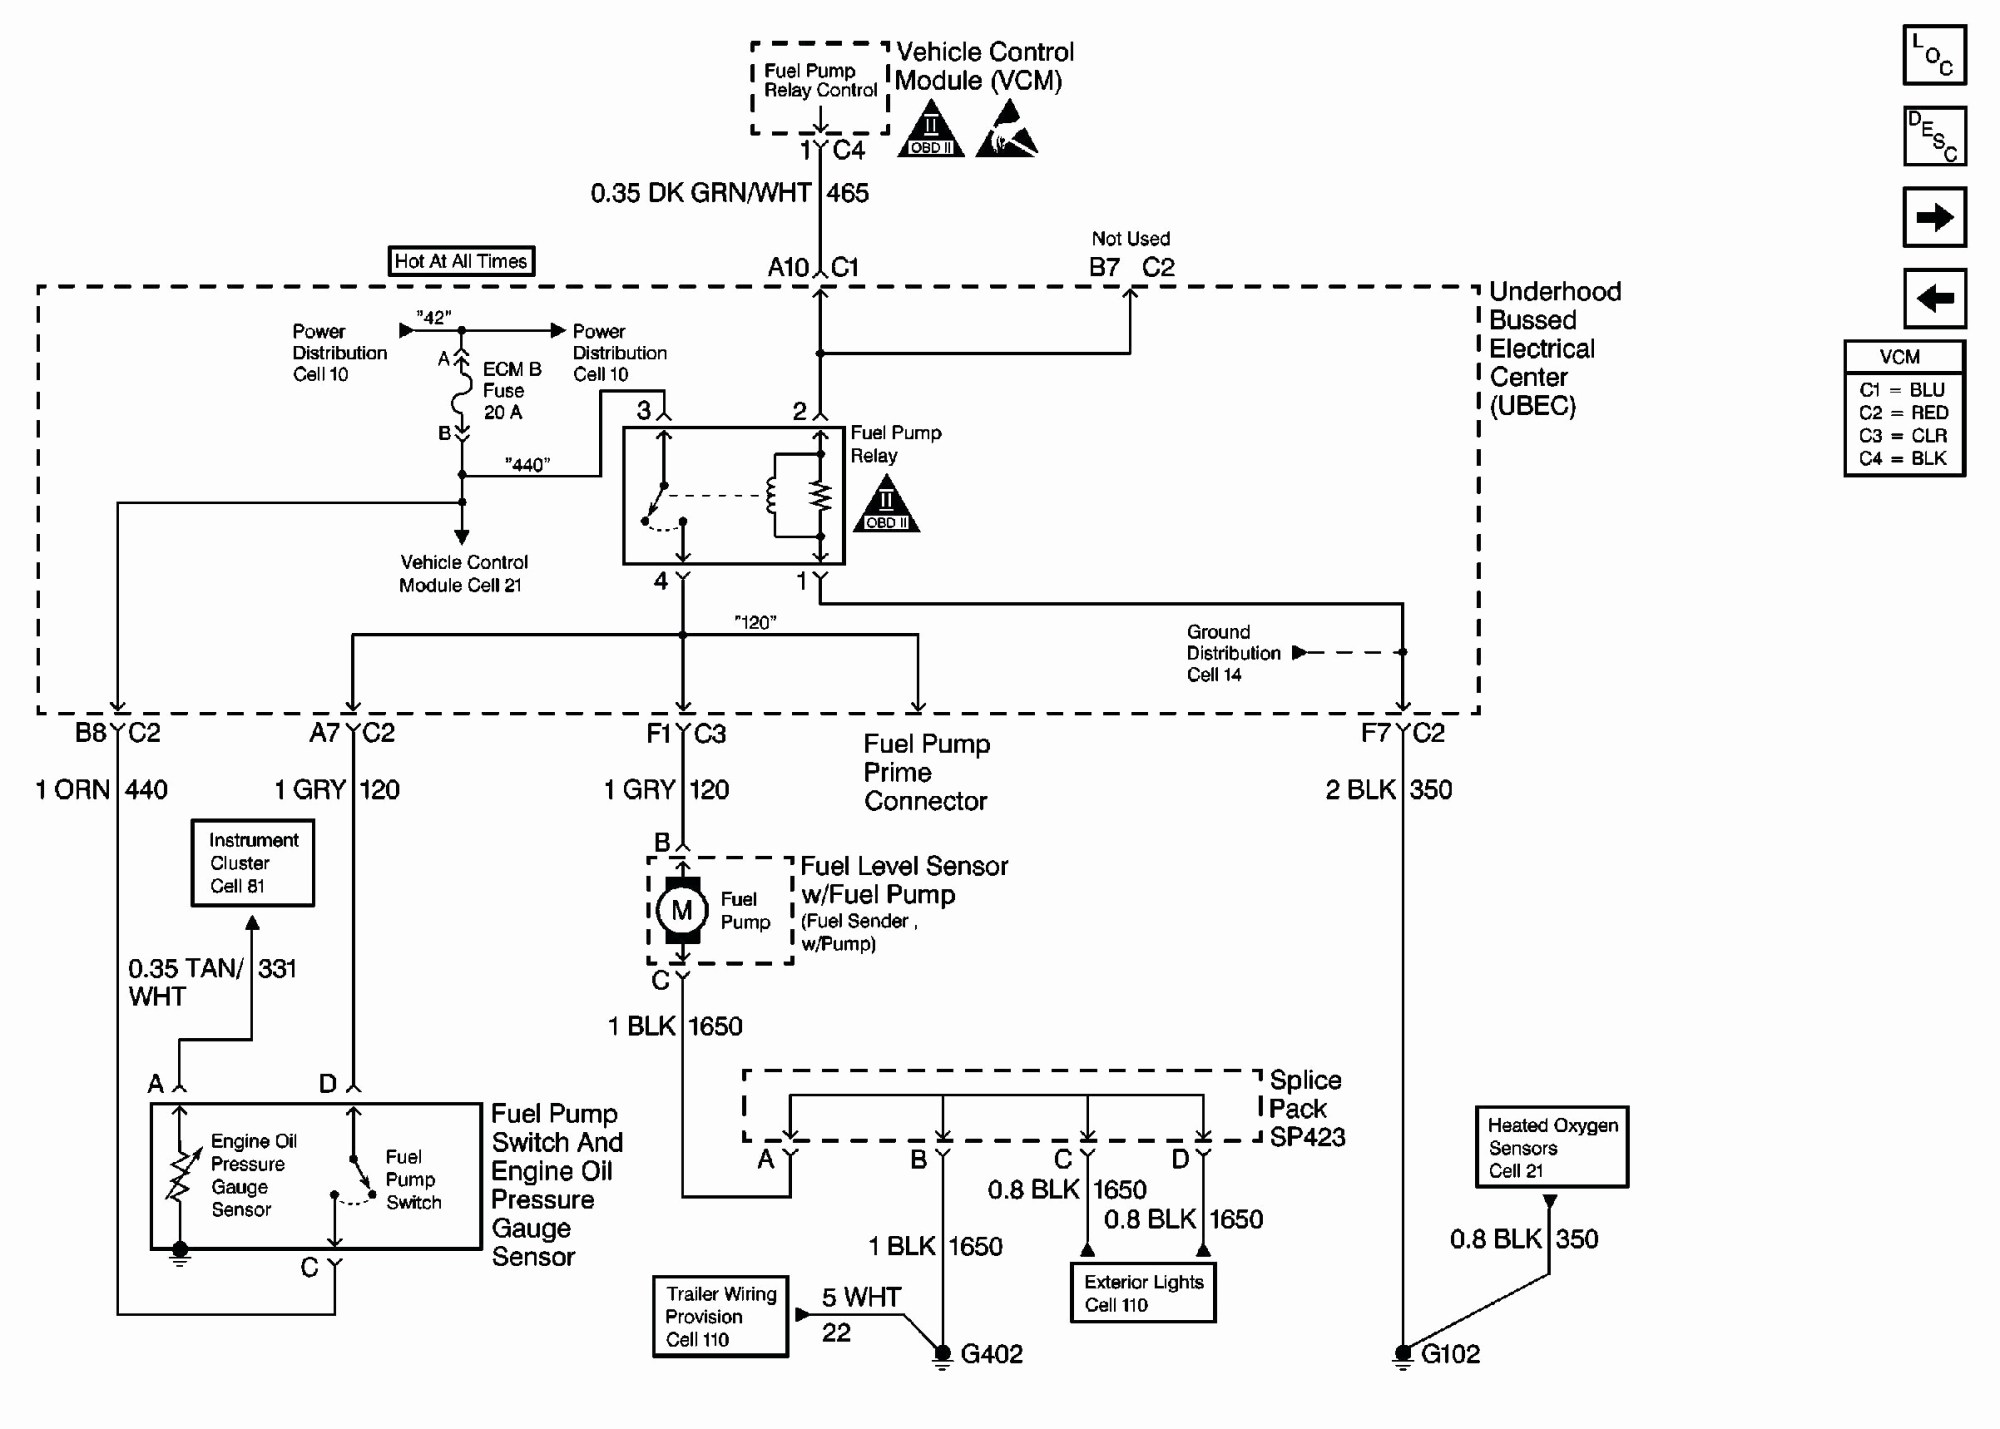 hight resolution of t12 trigger start ballast wiring diagram product wiring diagrams convert t12 to t8 wiring diagram convert t12 to t8 wiring diagram full size wiring